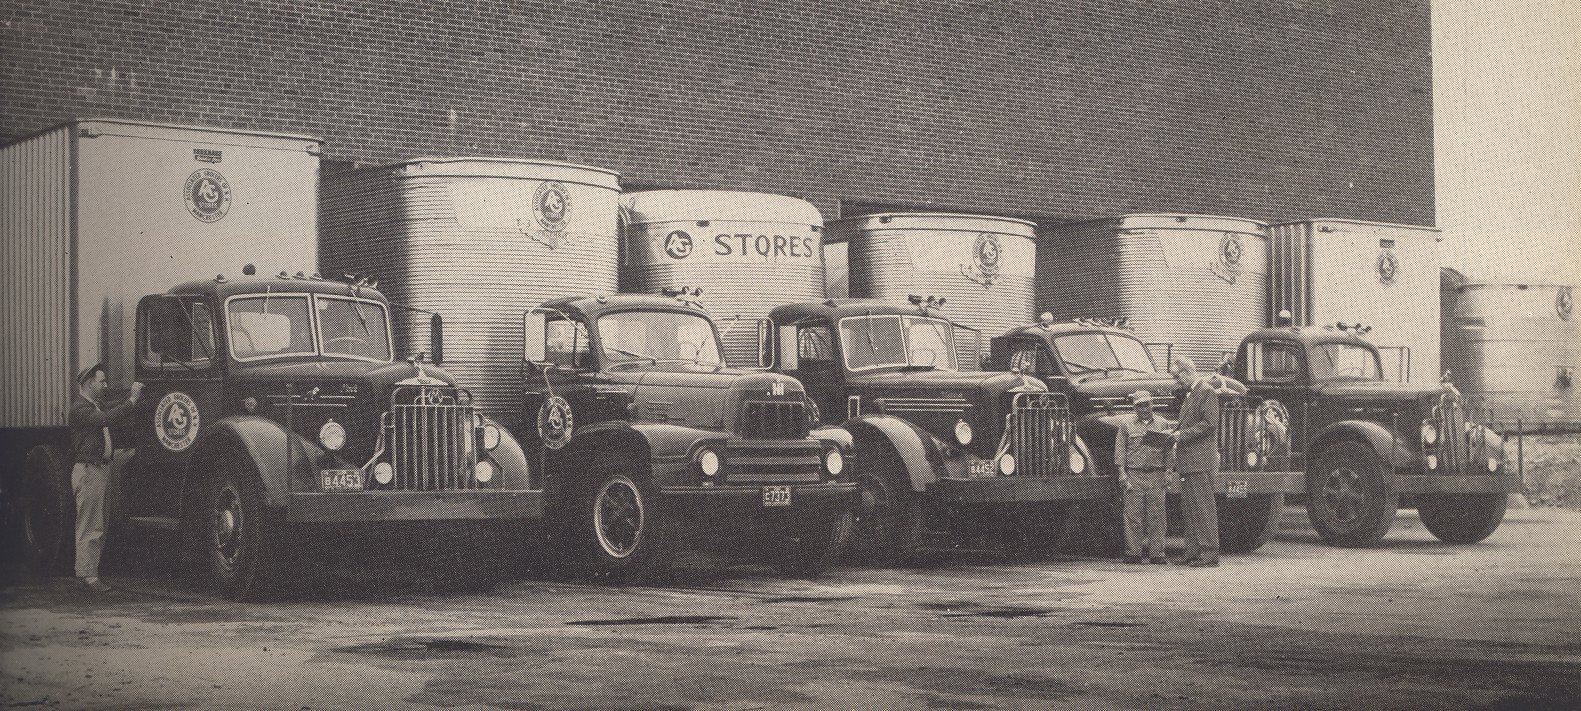 AGNE Grocers Warehouse Trucks